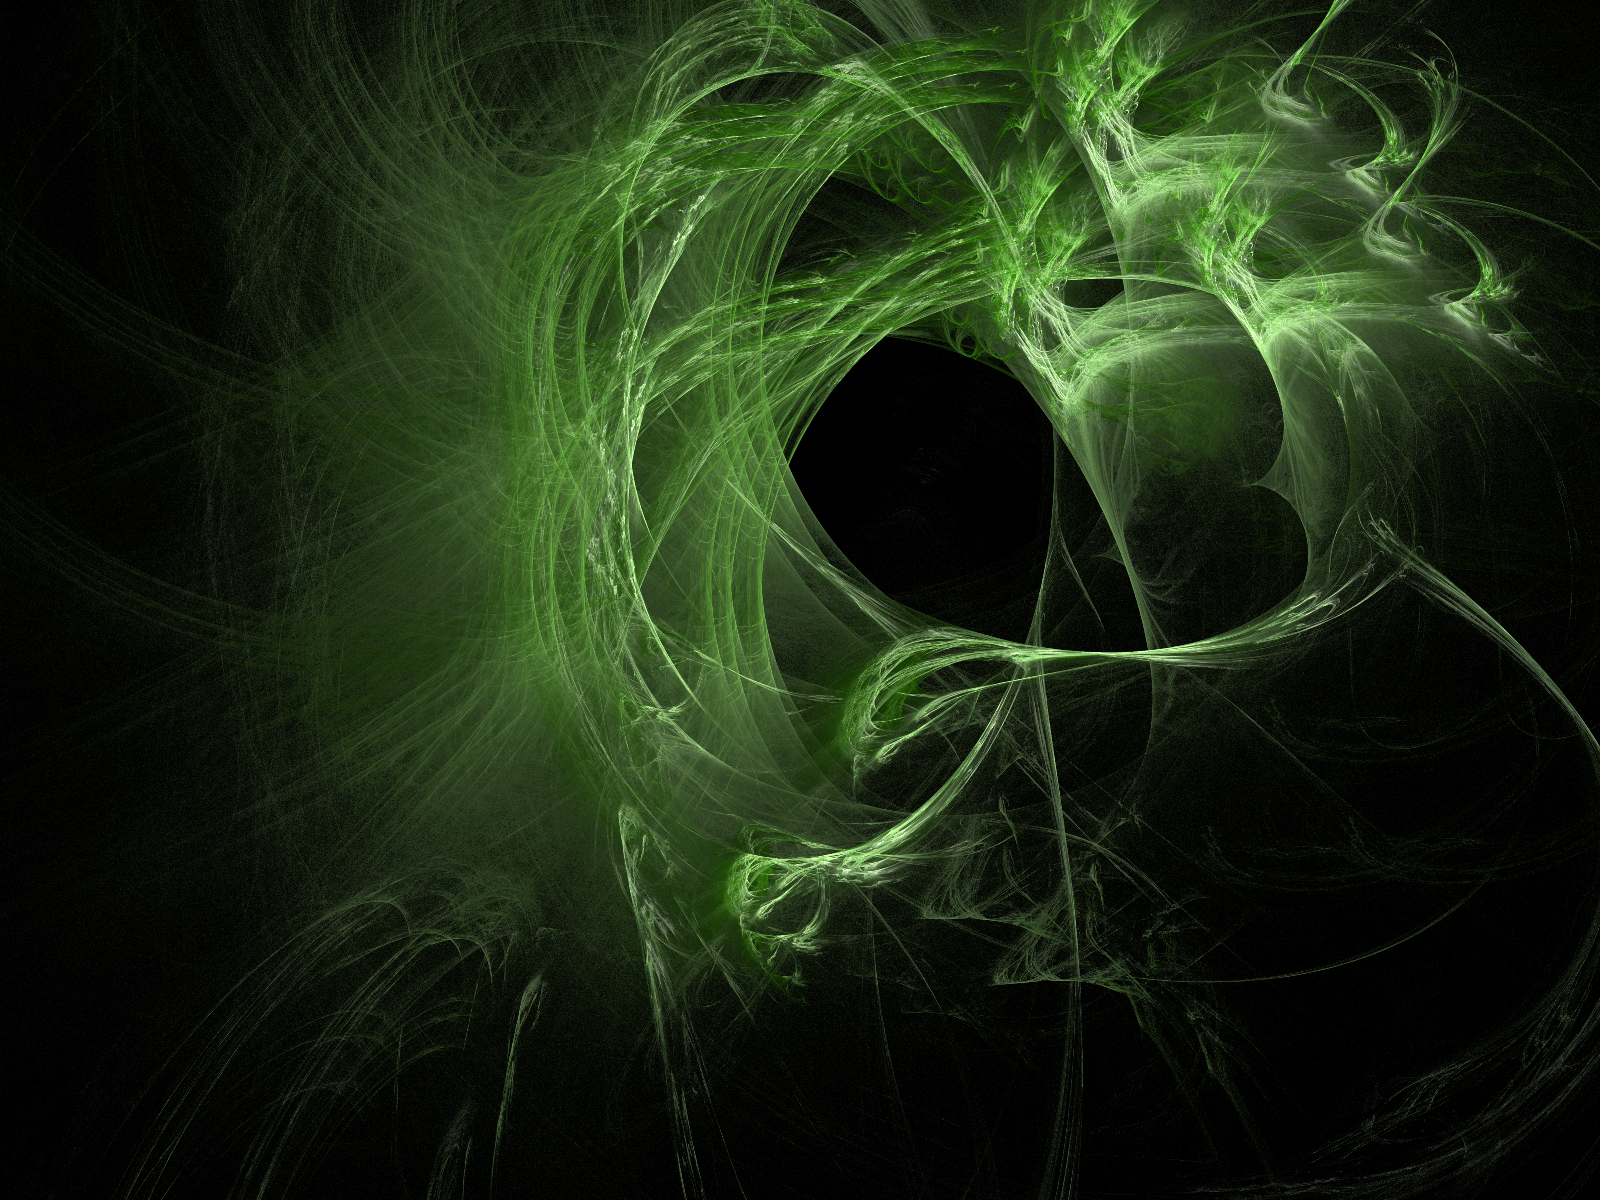 Wall 223 Emerald 365 Wallpapers 1600x1200